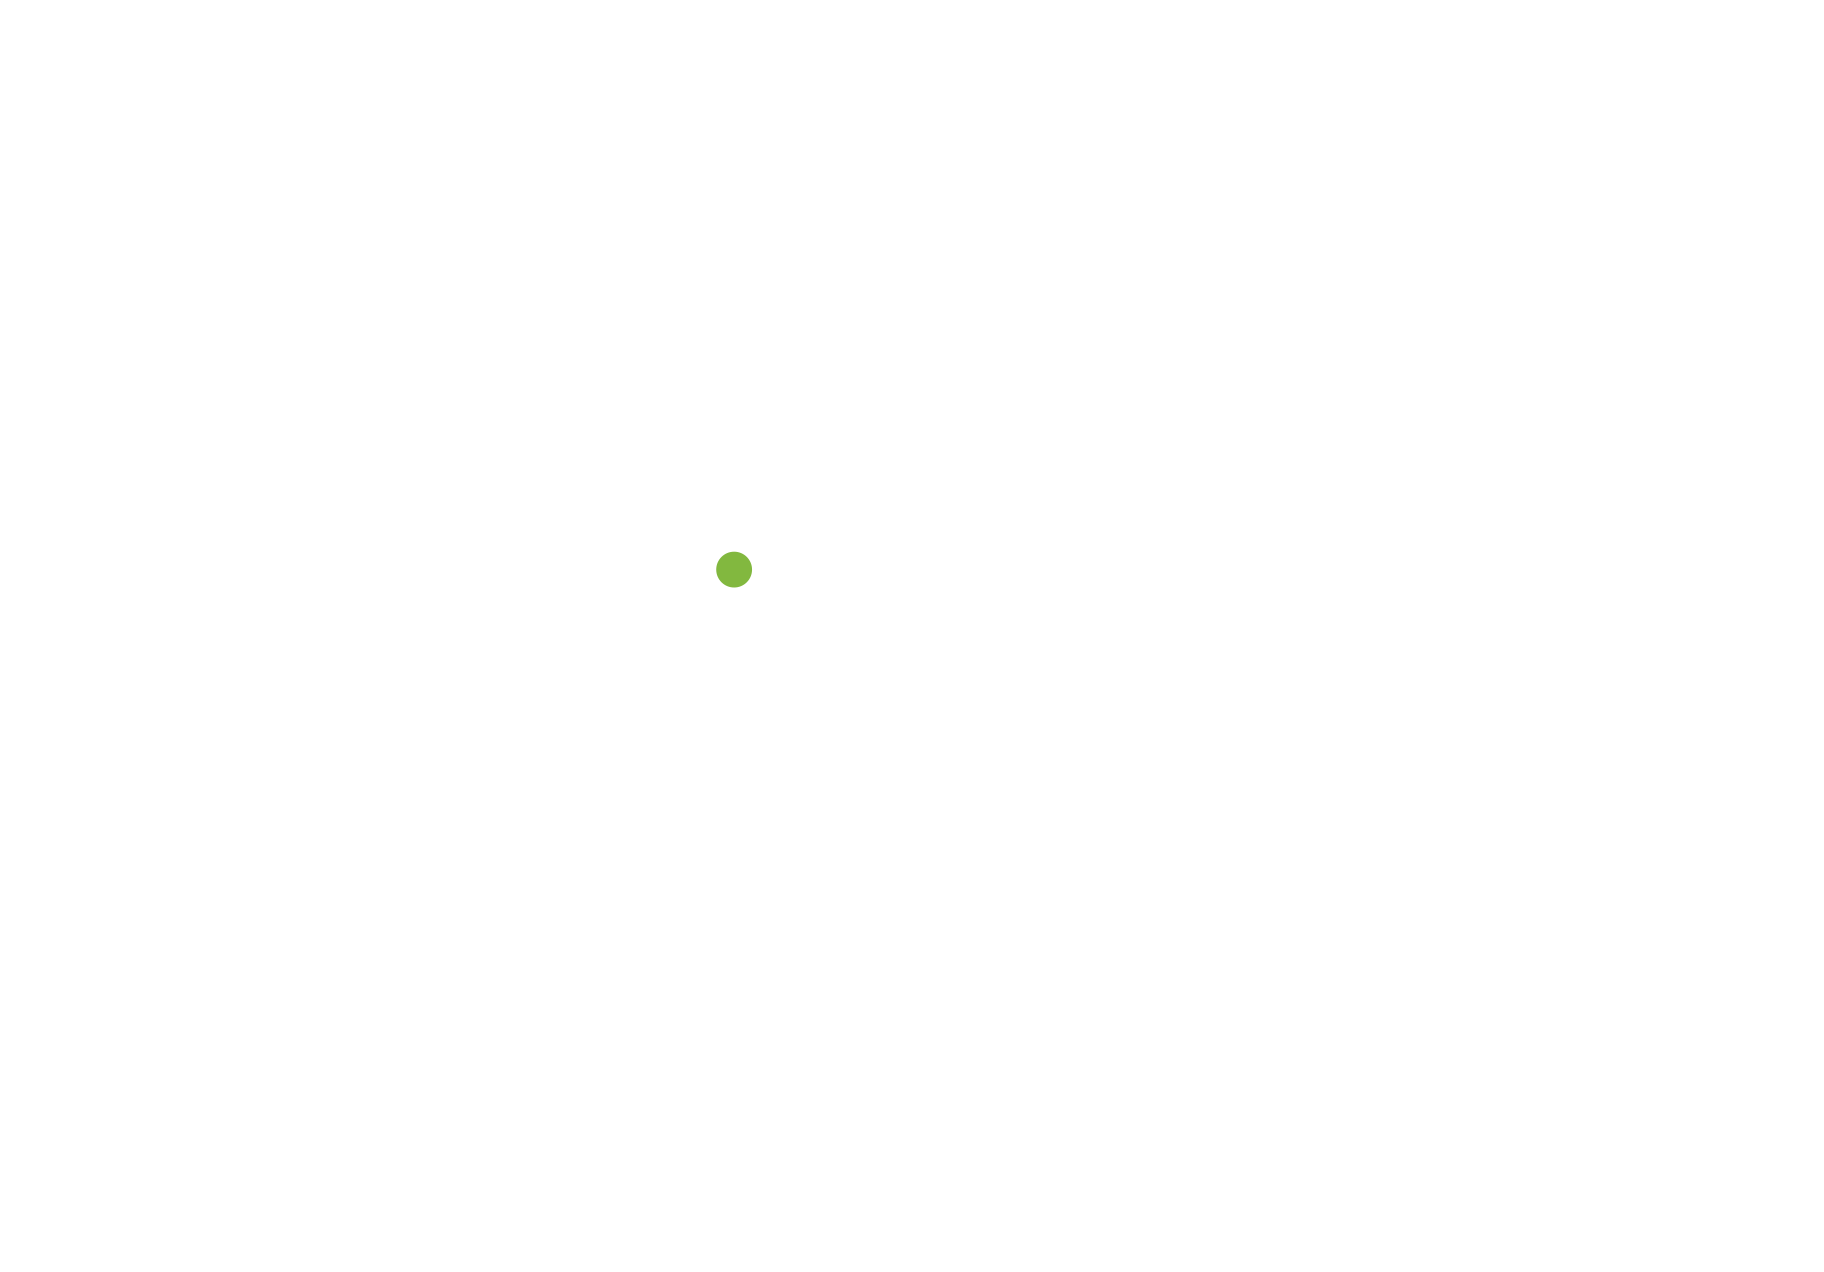 a green dotted line with a dot